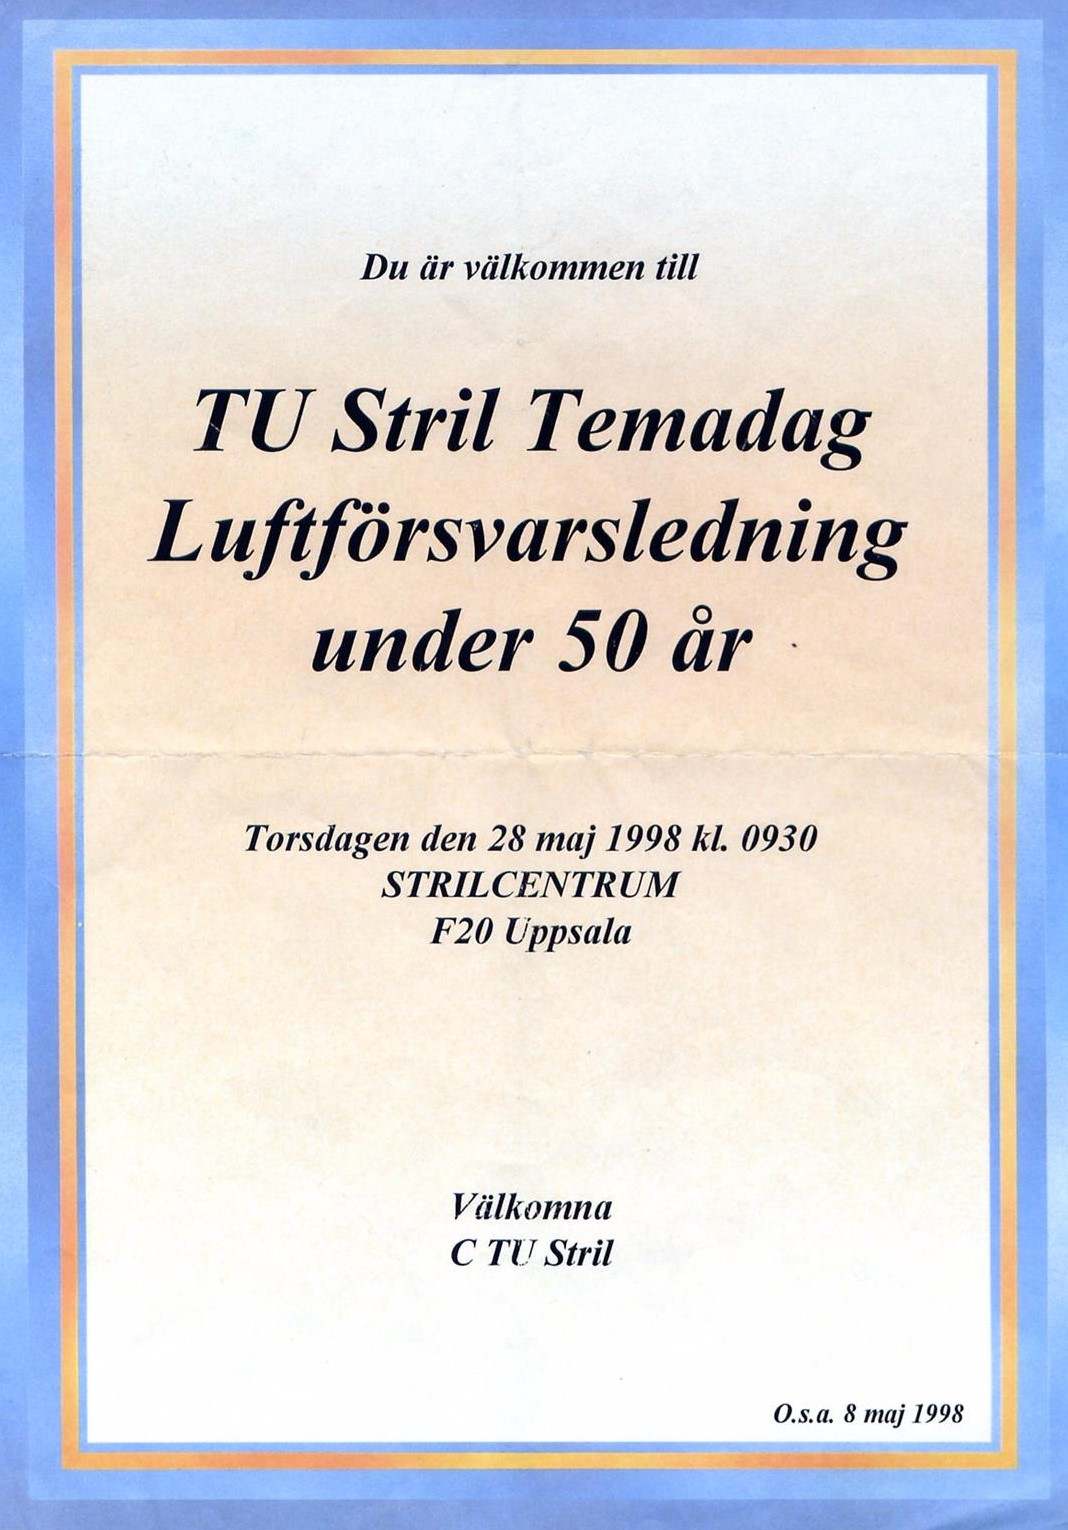 TU-stril Temadag